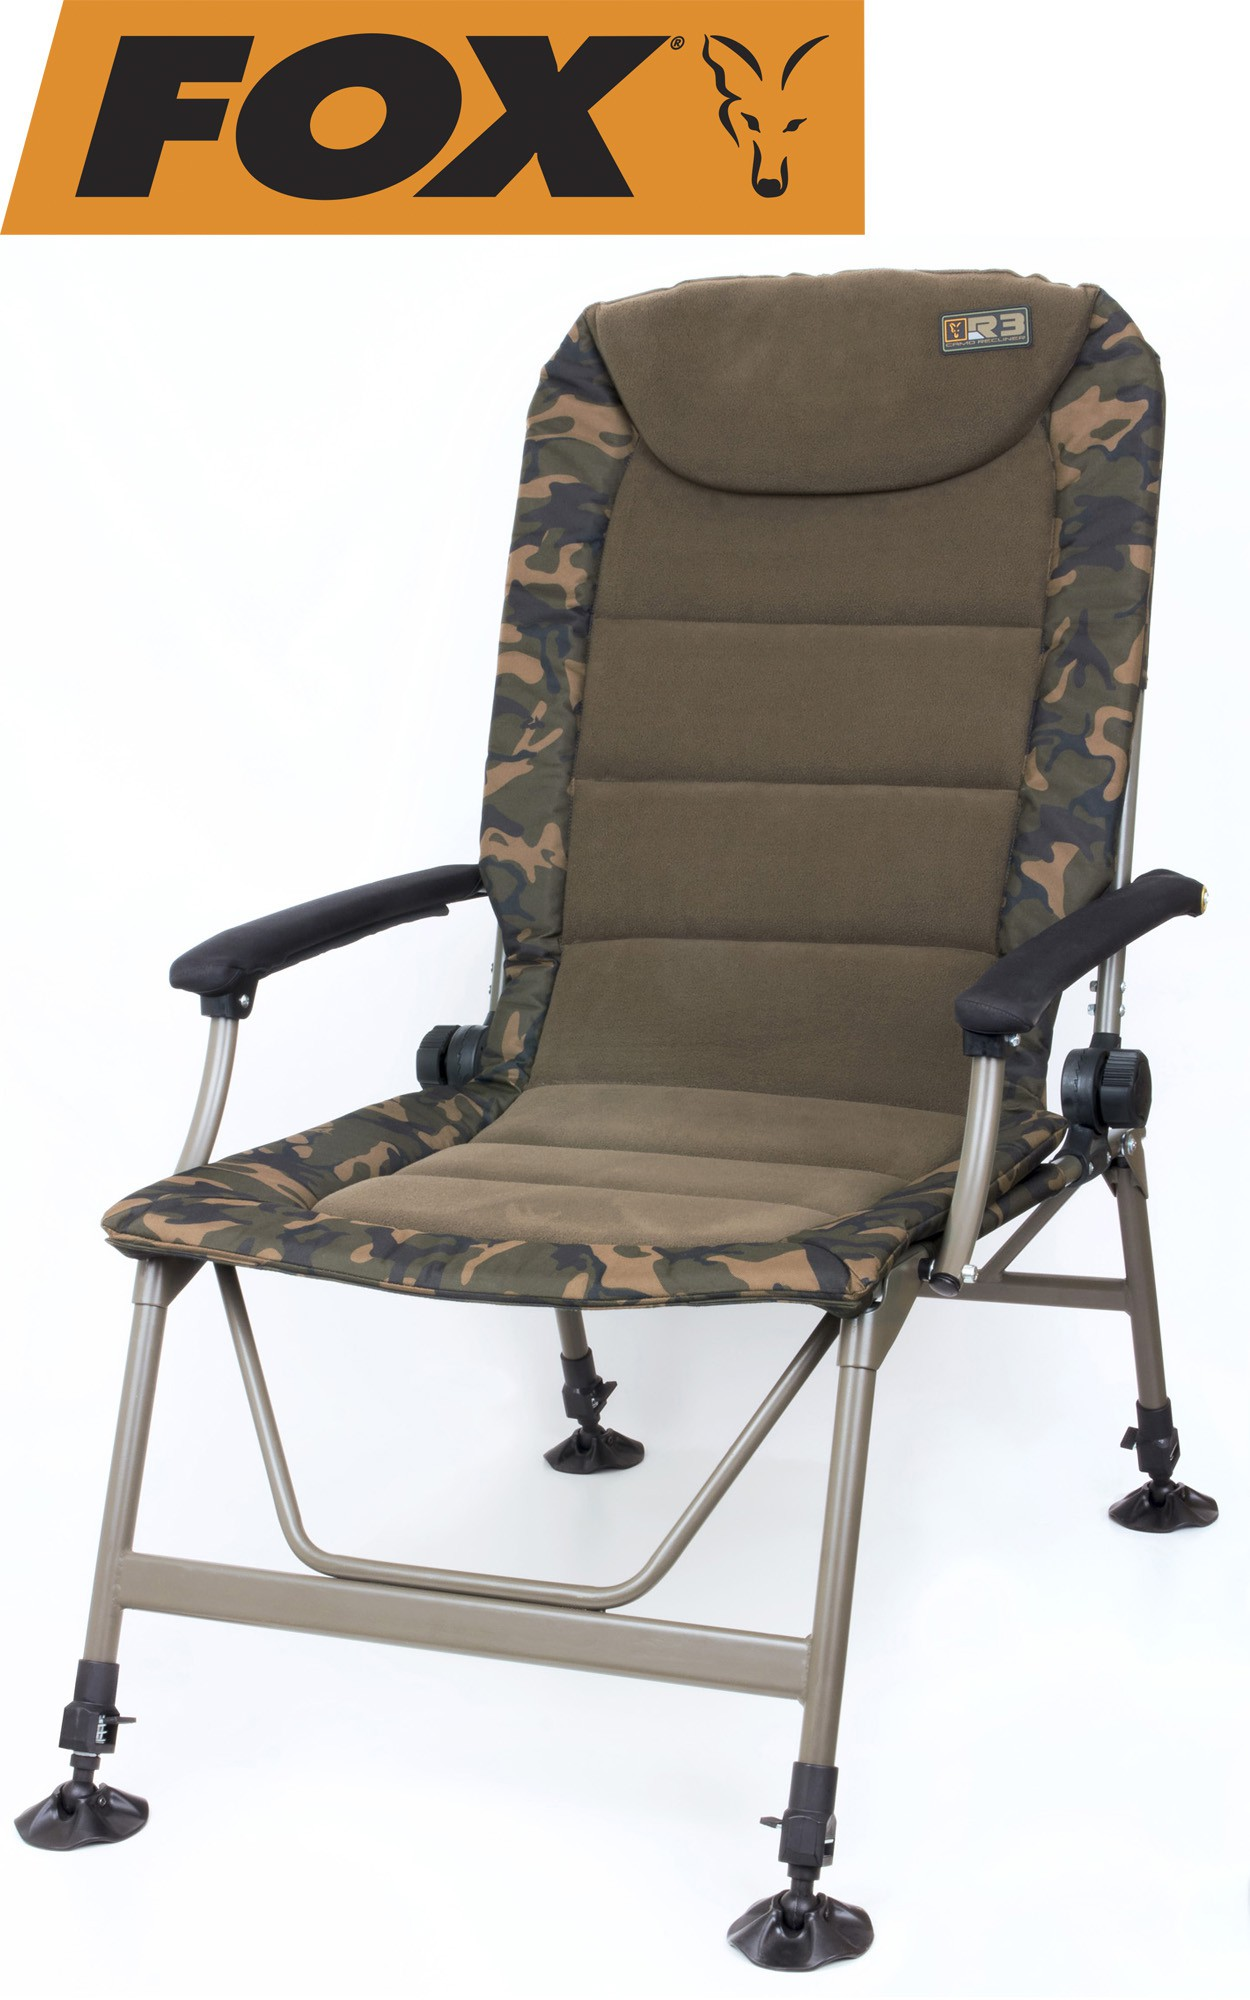 korda fishing chair best gaming computer fox r3 camo stuhl